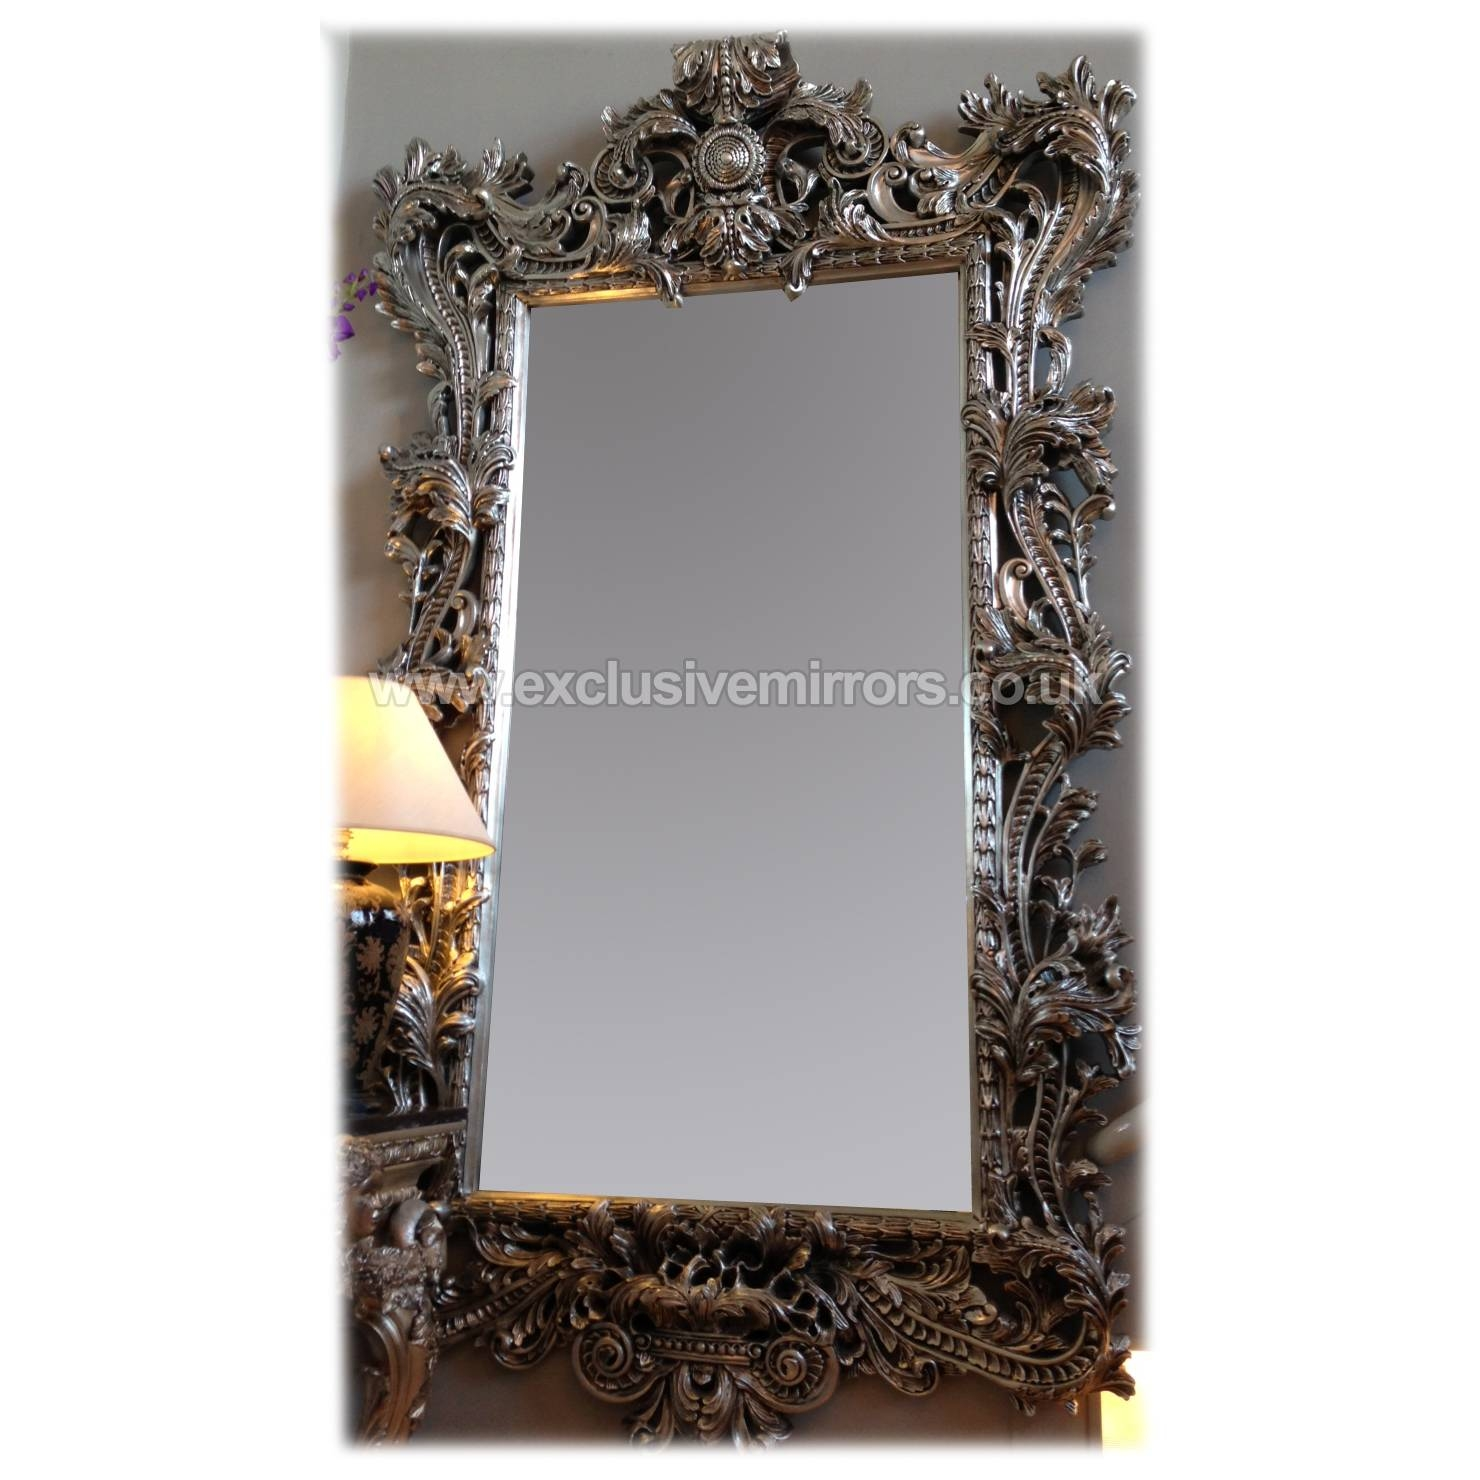 Extra Large Wall Mirrors 109 Cute Interior And Large Gold Very inside Ornate Wall Mirrors (Image 12 of 25)